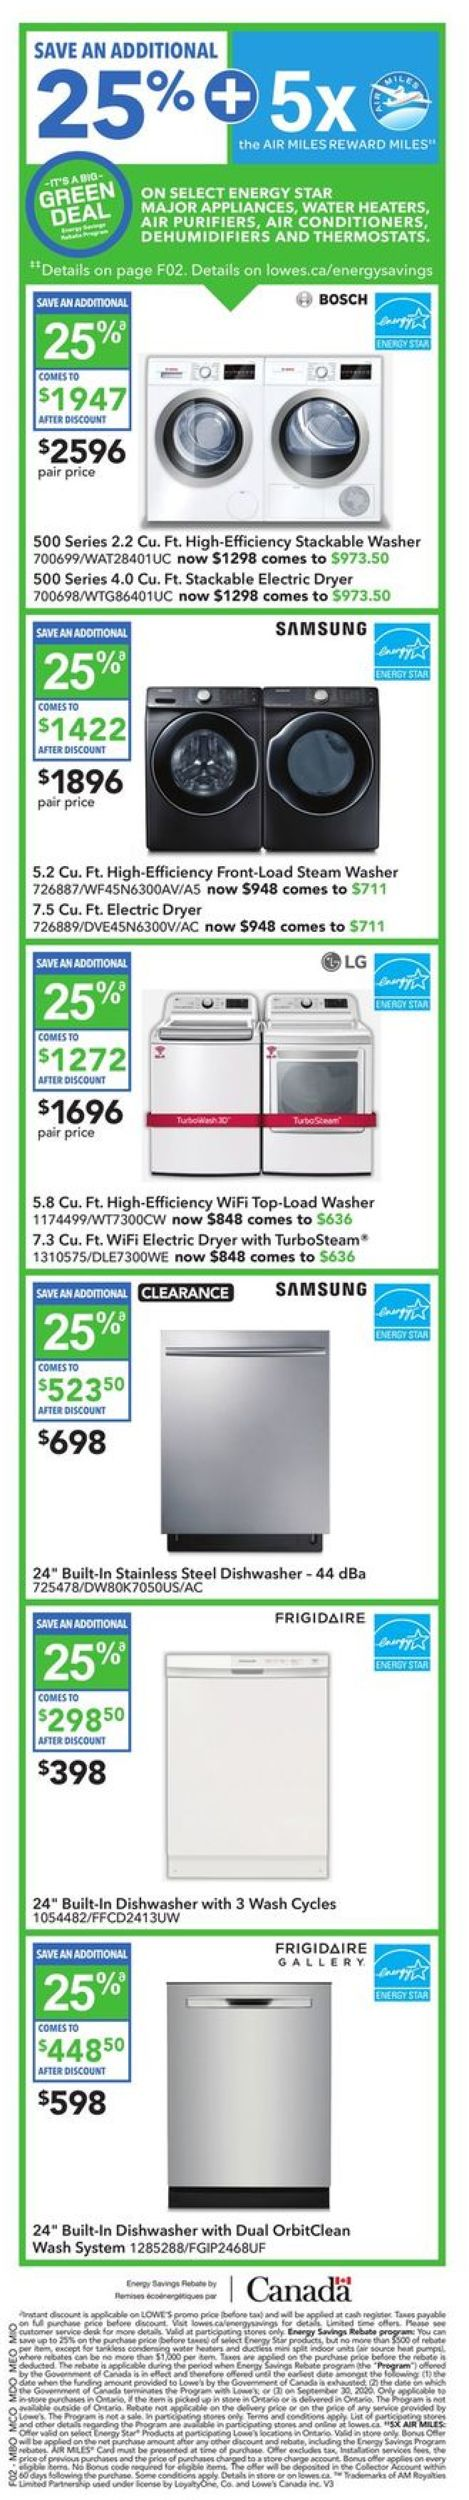 Lowes Flyer - 09/26-10/02/2019 (Page 2)